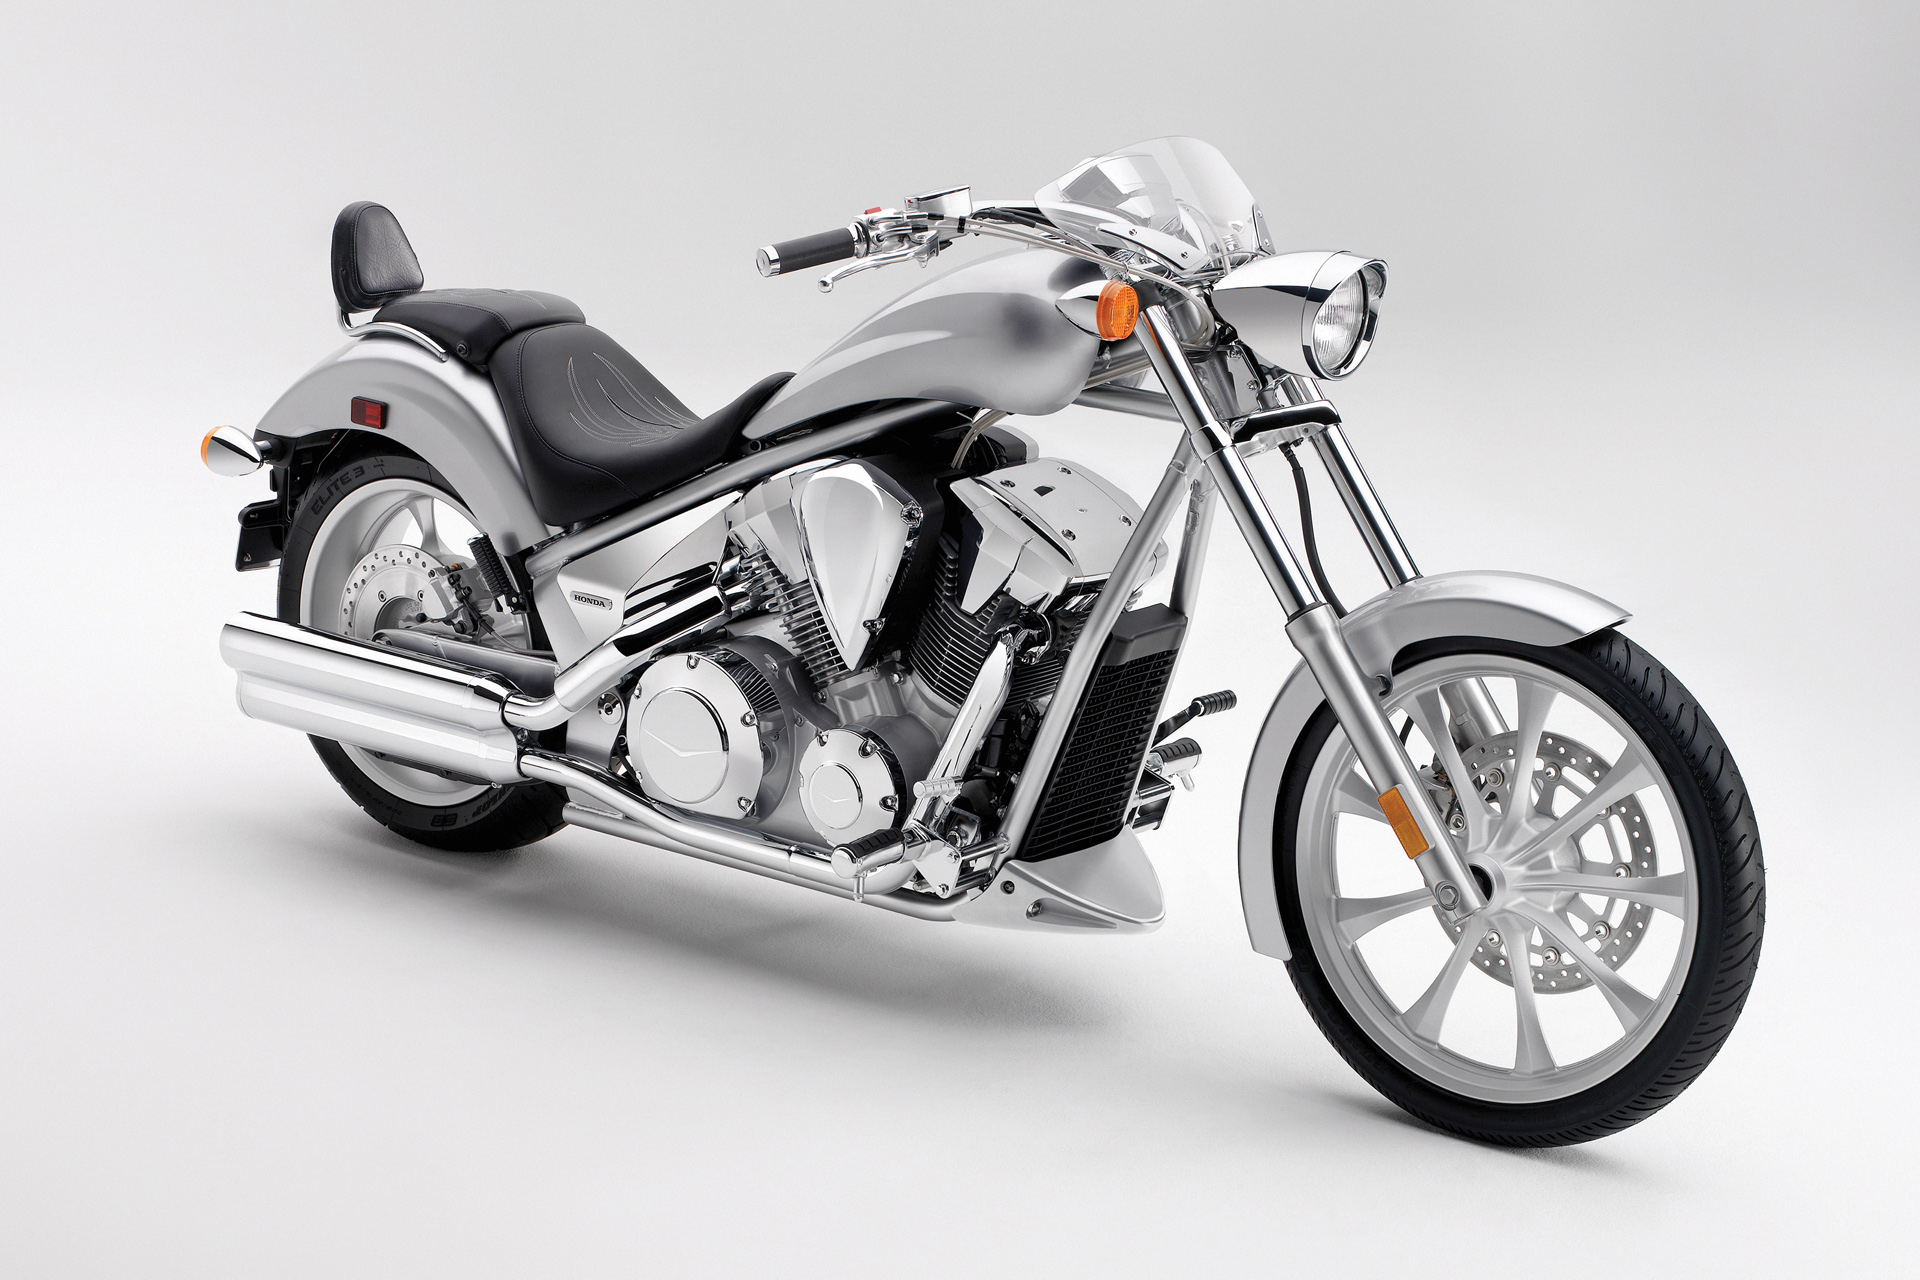 2010 honda fury wiring diagram anything wiring diagrams \u2022 victory wiring diagram 2010 honda fury wiring diagram images gallery